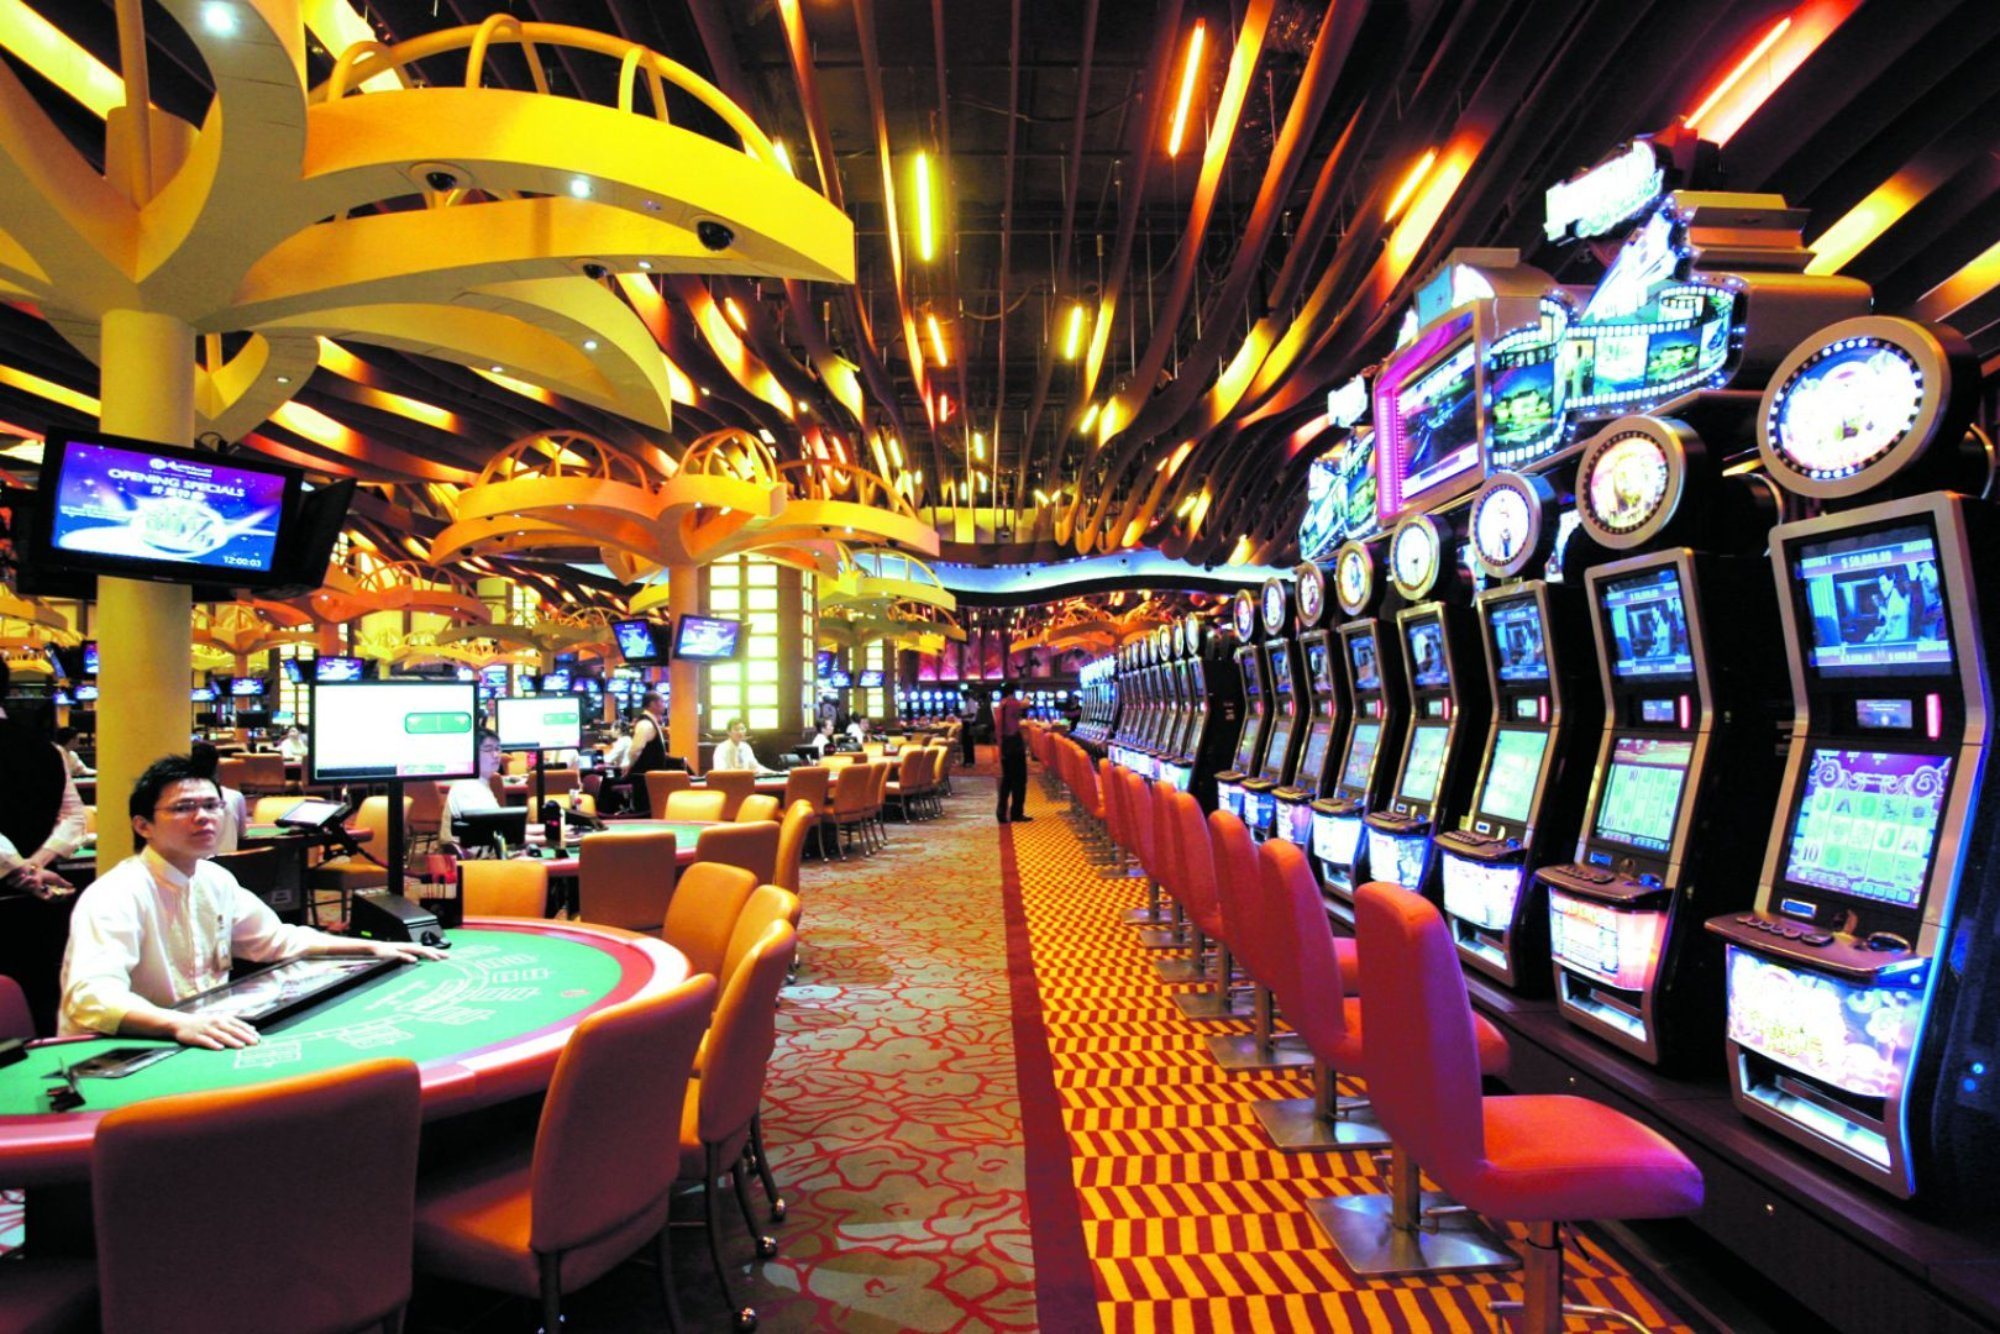 cambodia gambling - How to Set Yourself Up as a New Gambler